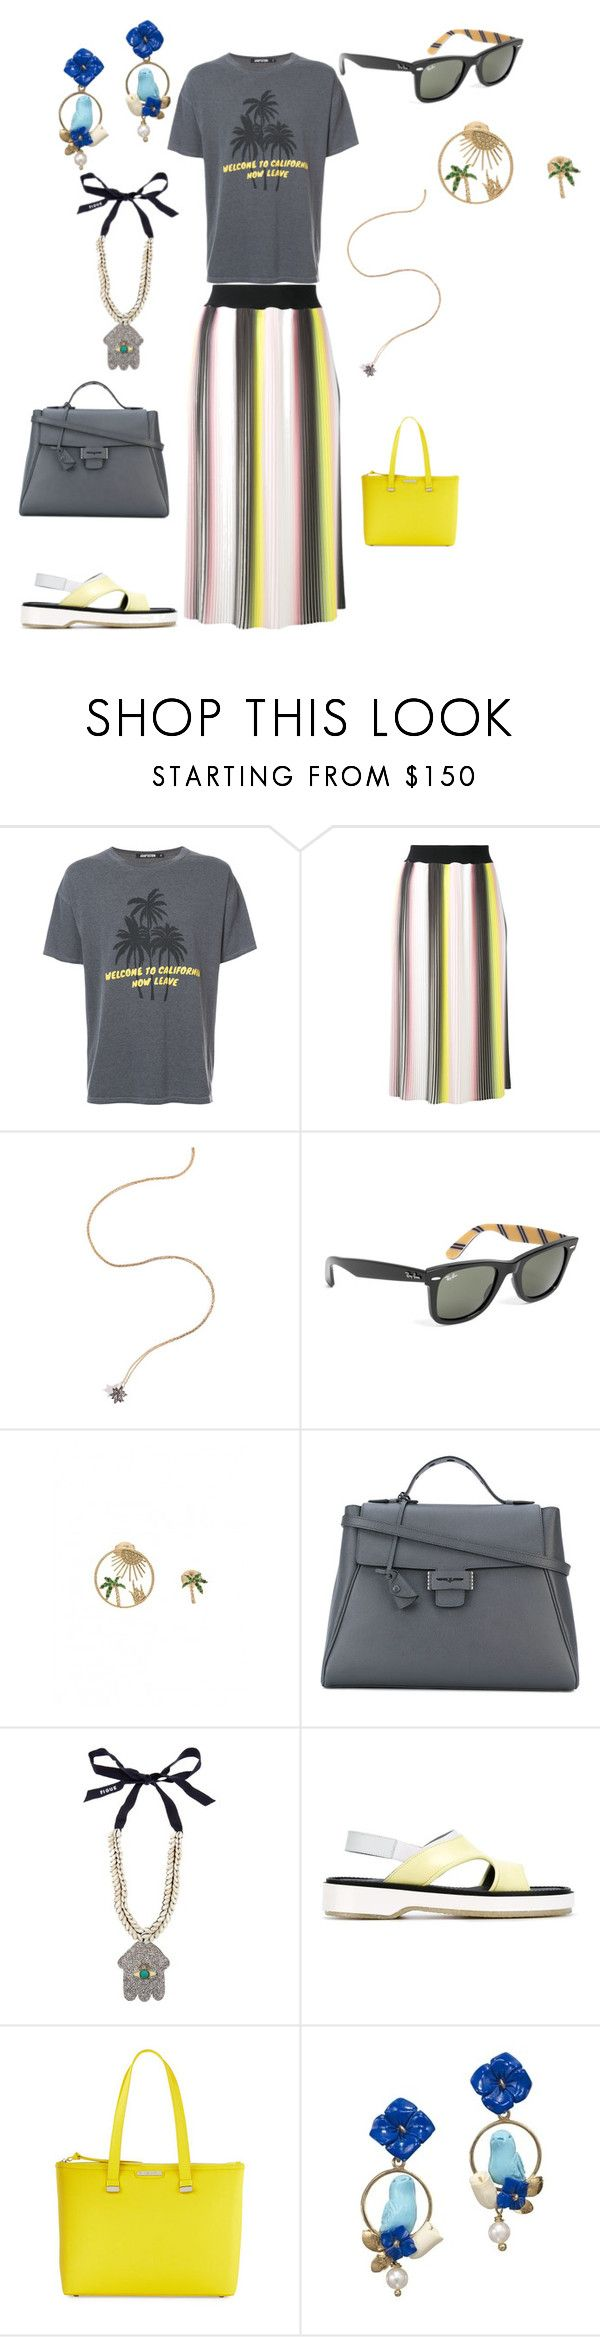 """""""SPRING FASHION"""" by ramakumari ❤ liked on Polyvore featuring Adaptation, MARCOBOLOGNA, Noor Fares, Brooks Brothers, Yvonne Léon, Myriam Schaefer, Figue, Adieu, Charles Jourdan and Of Rare Origin"""